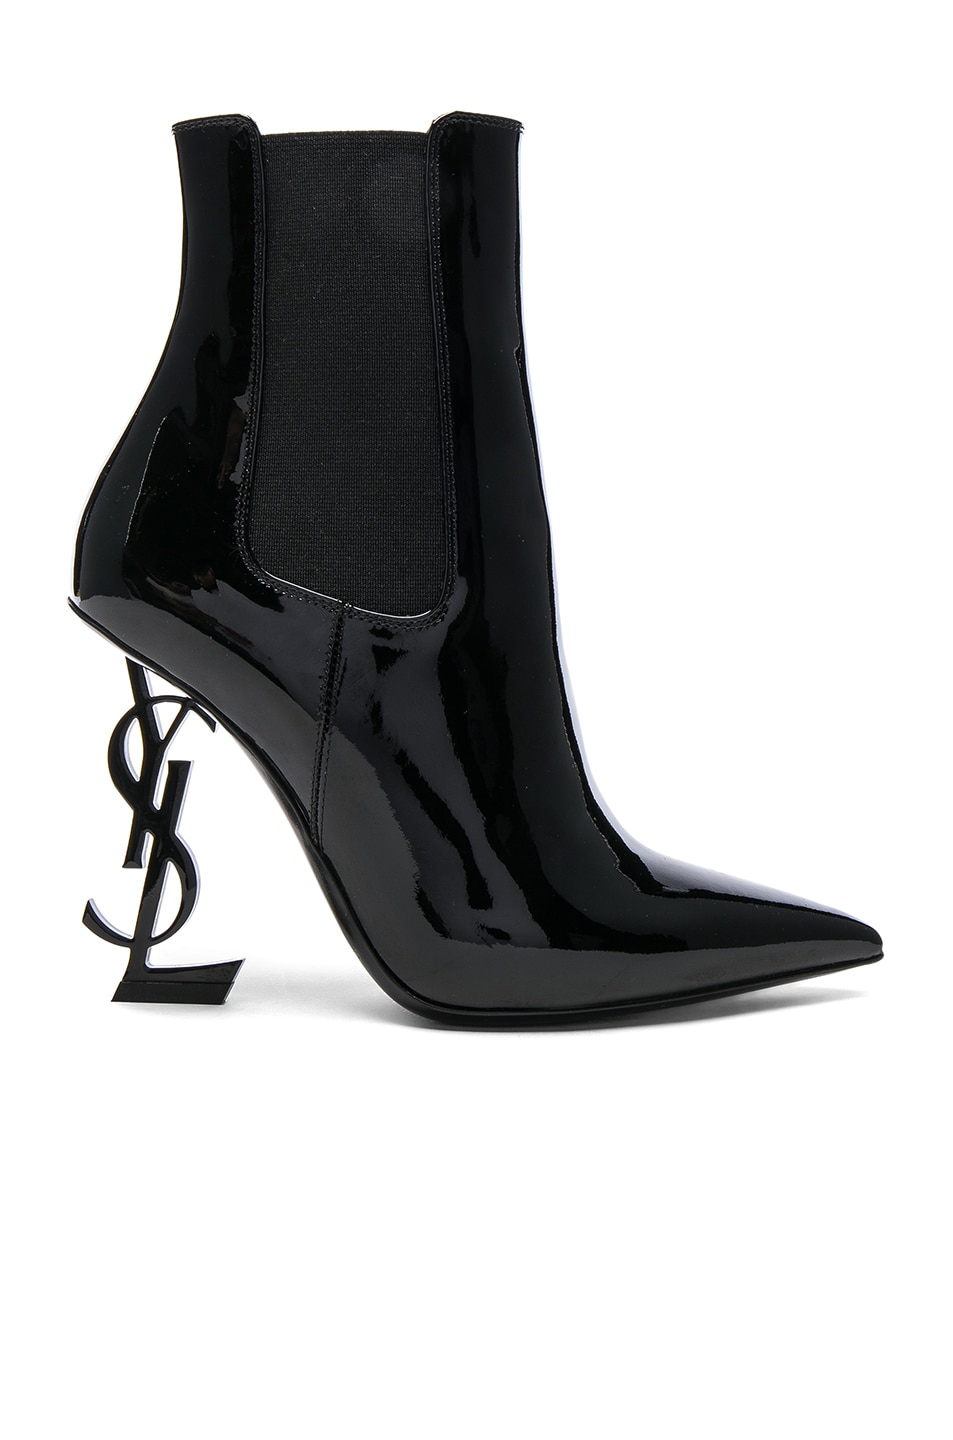 Image 1 of Saint Laurent Patent Opium Monogramme Heeled Boots in Black & Black